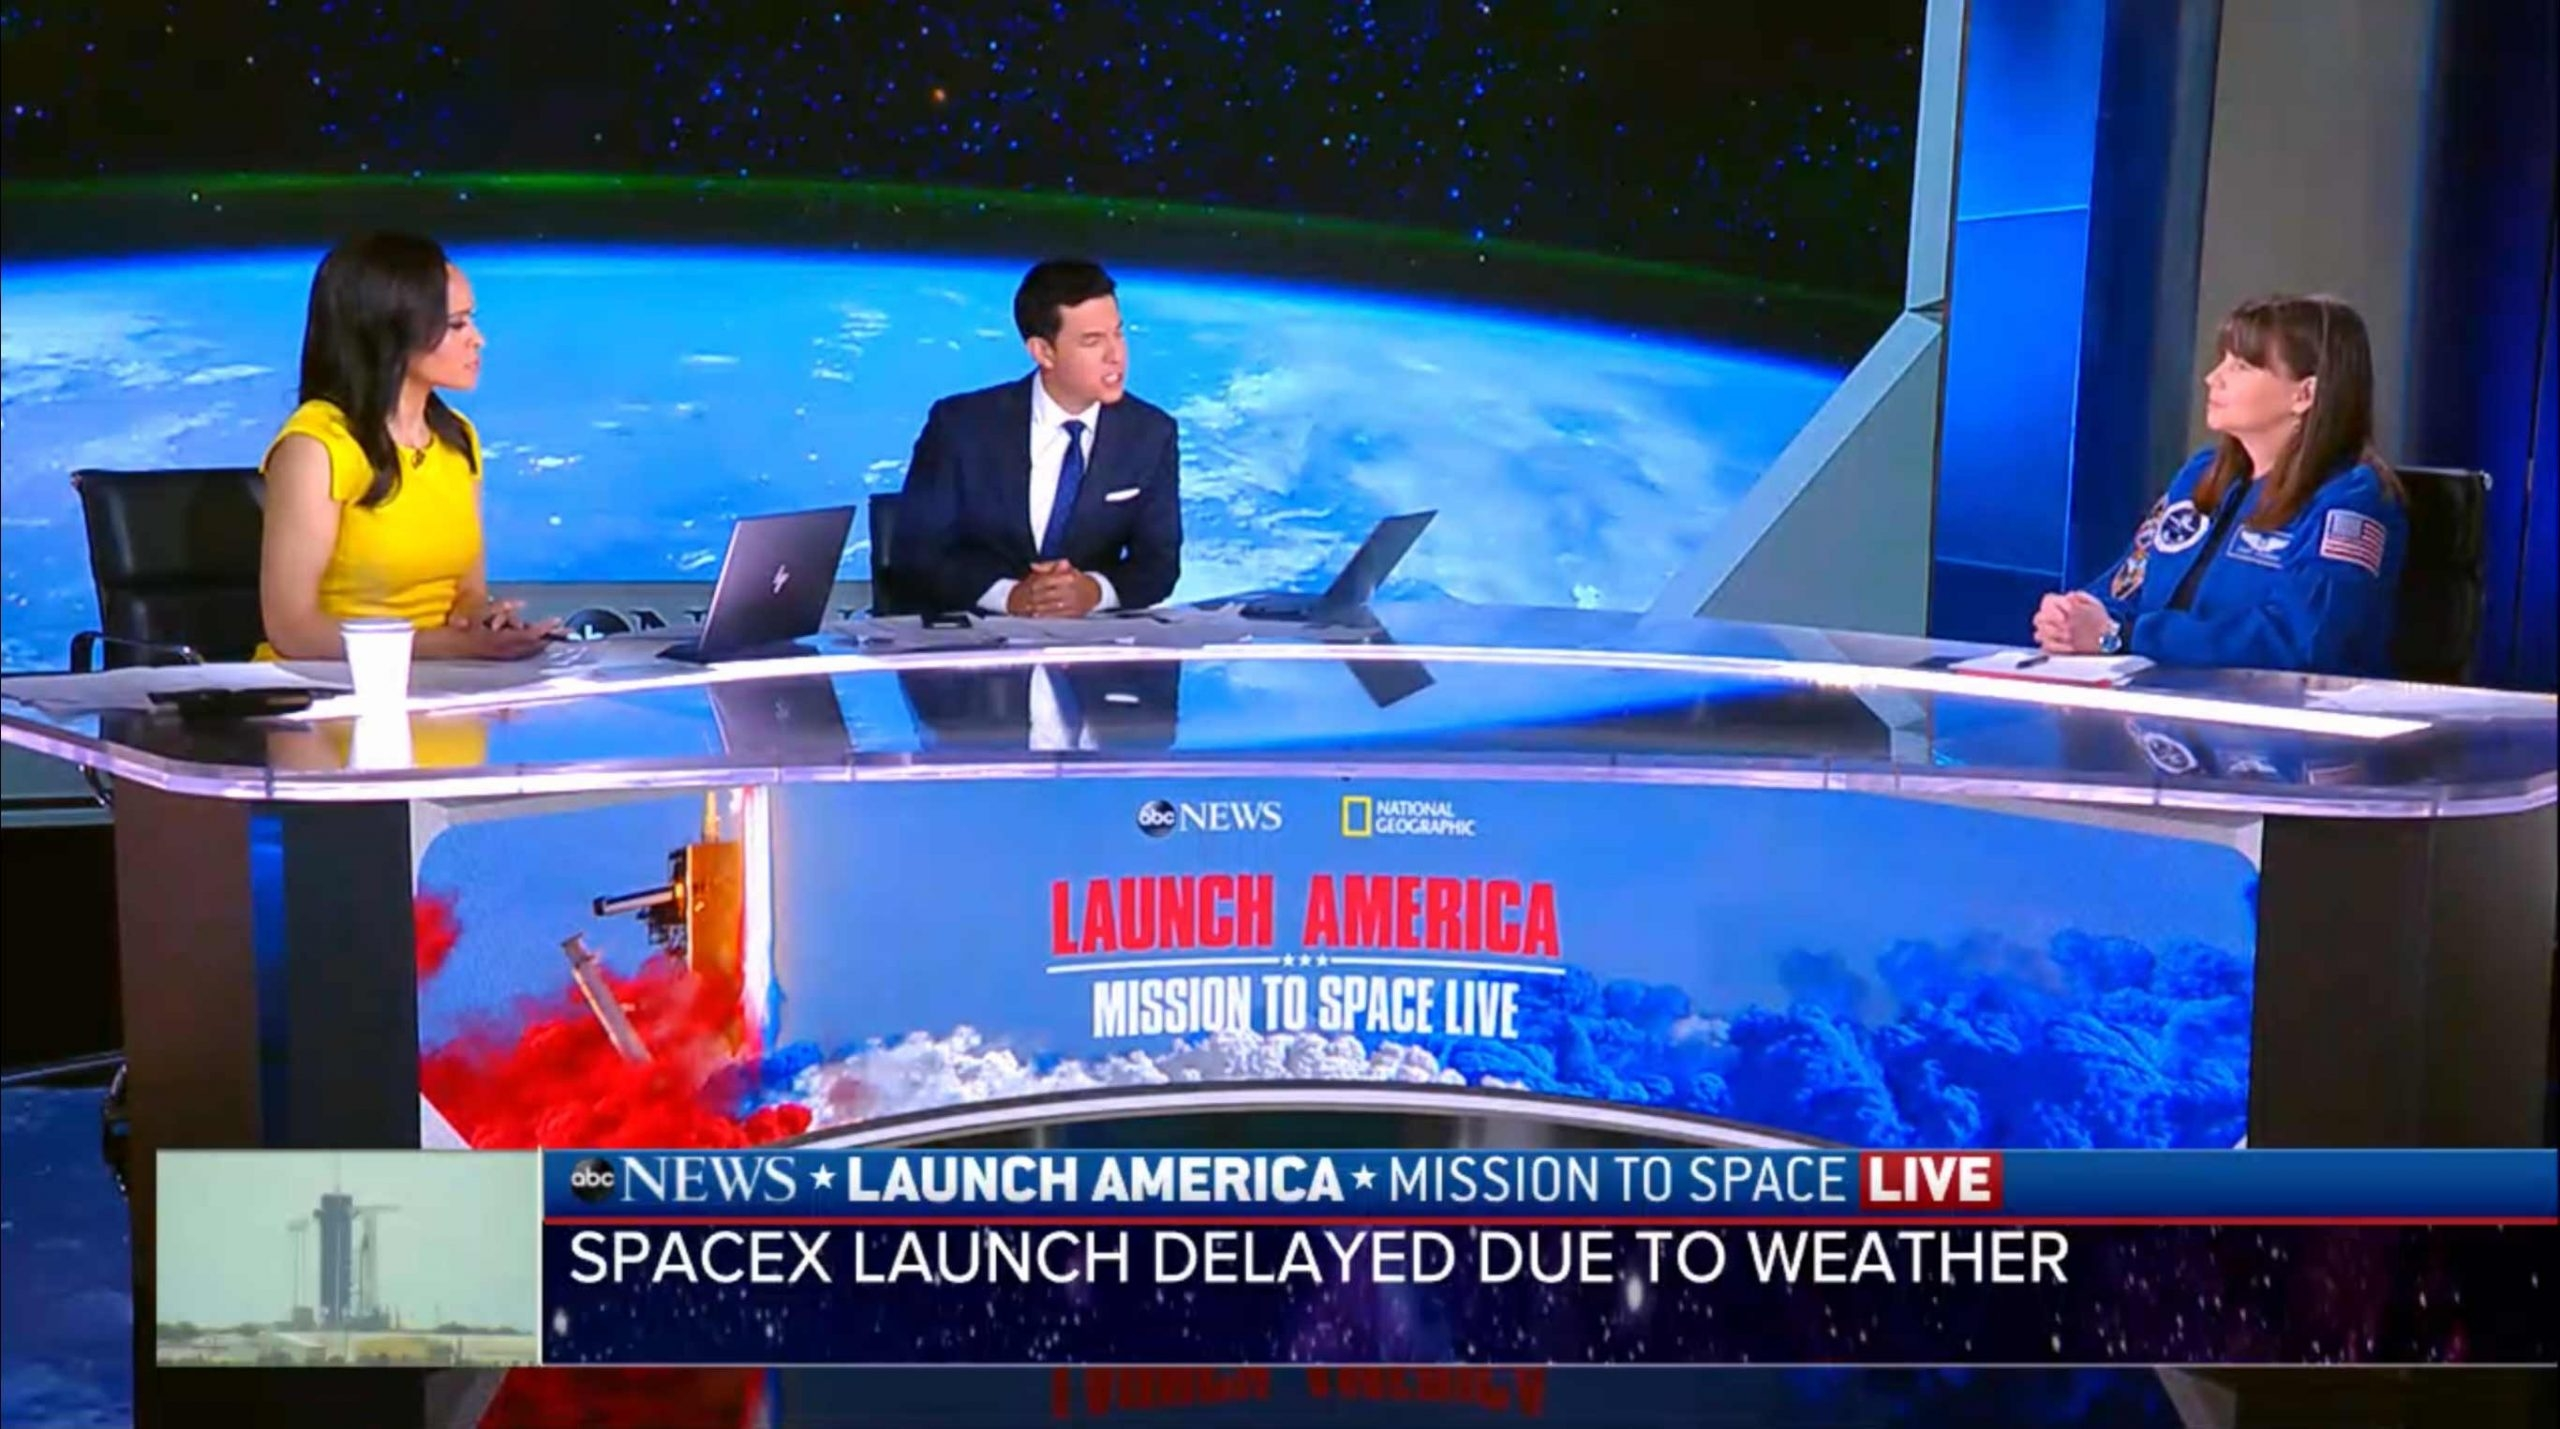 ABC News : Launch America